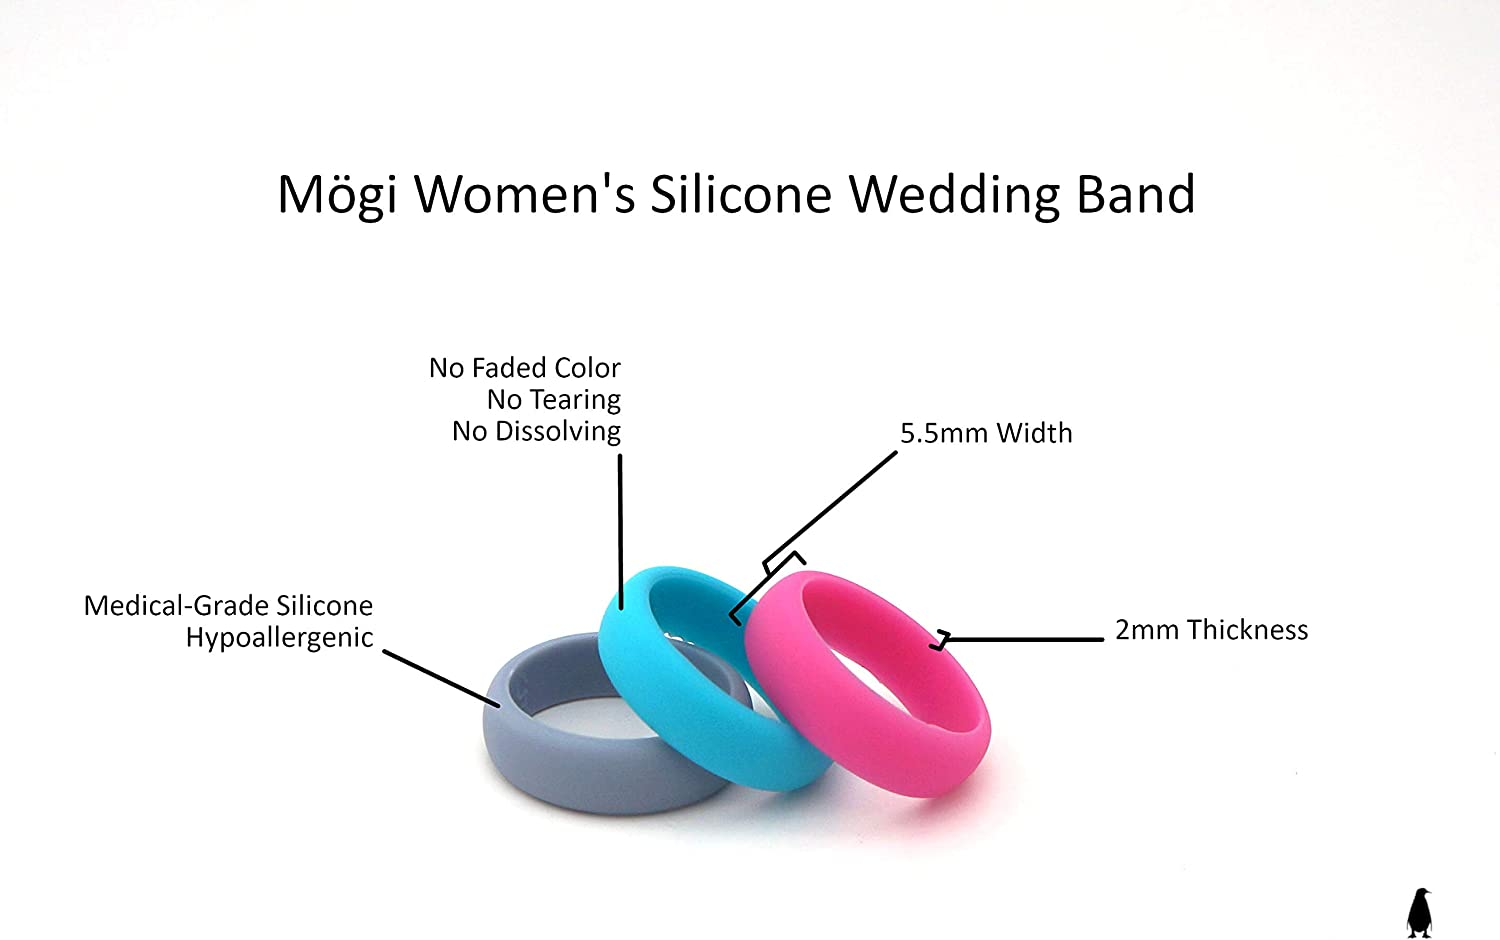 Fitness Ring M/ögi Rubber Wedding Bands Single Black or Set of 3-2mm Thickness Silicone Rings for Women Silicone Wedding Rings Womens Silicone Wedding Band